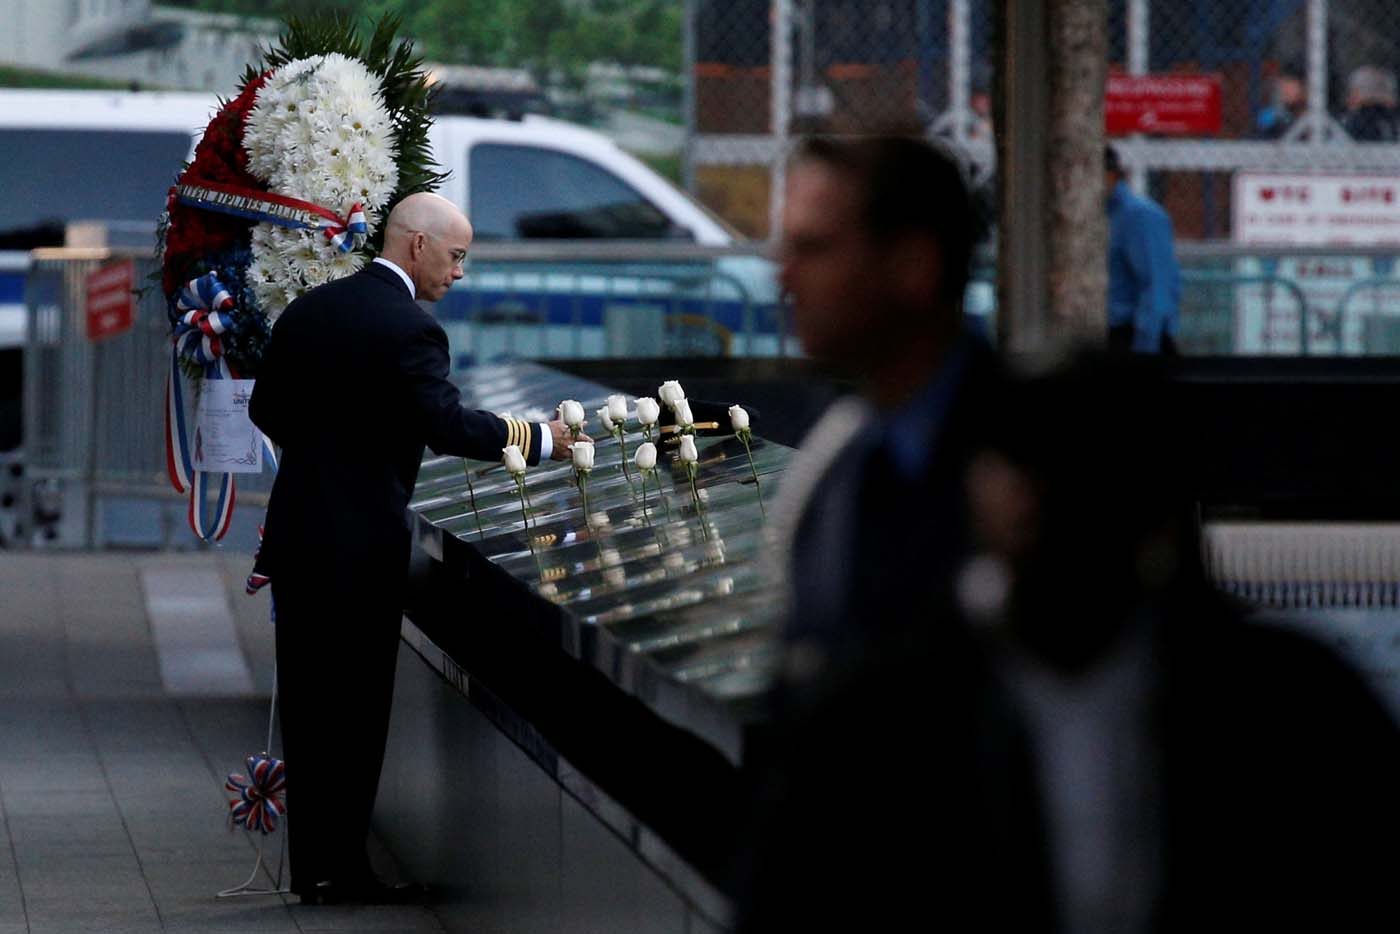 A man places white roses at the edge of the South reflecting pool at the National September 11 Memorial and Museum during ceremonies marking the 16th anniversary of the September 11, 2001 attacks in New York, U.S, September 11, 2017. REUTERS/Brendan McDermid